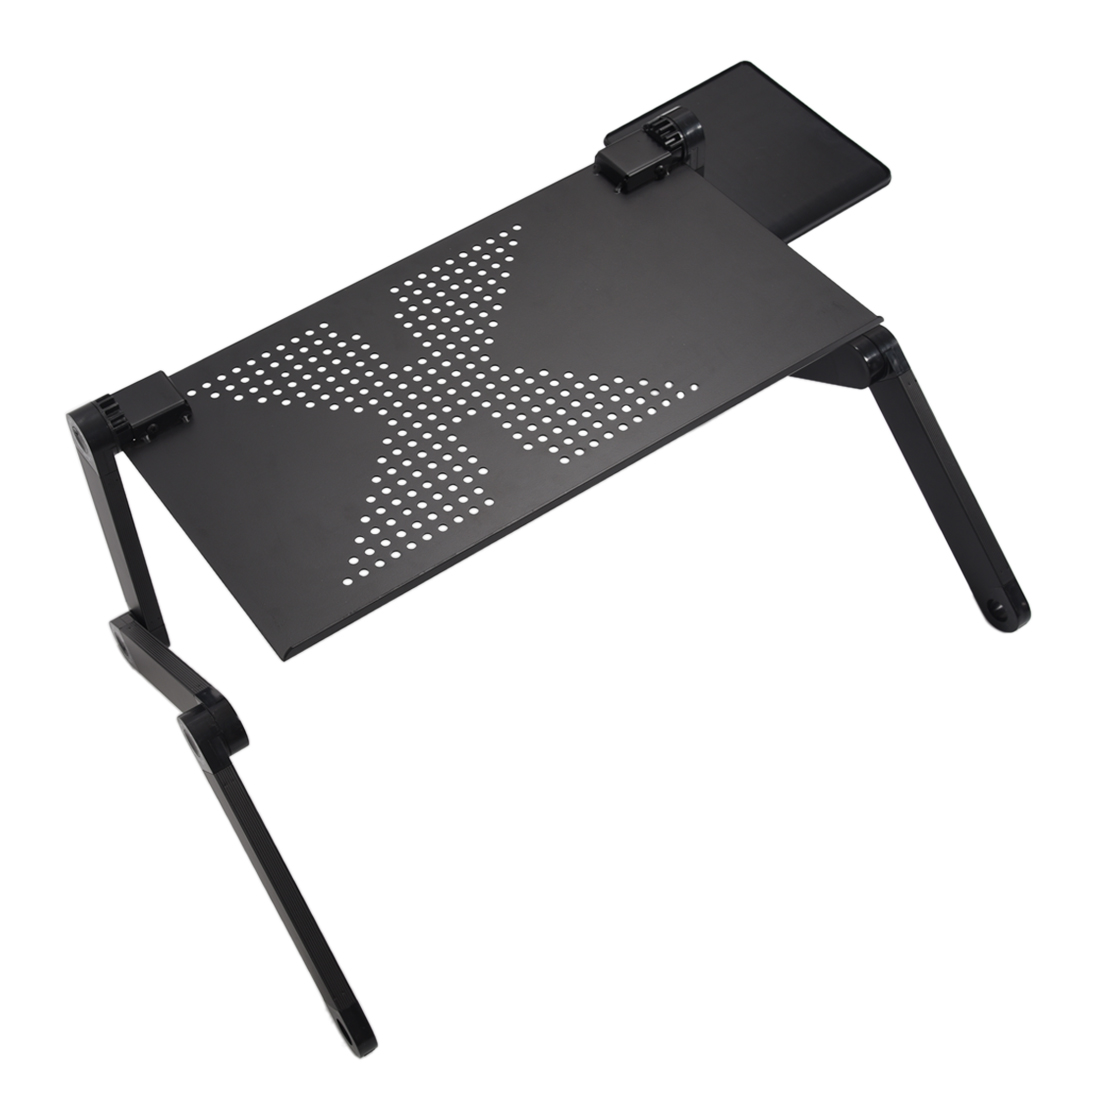 computer-desk-portable-adjustable-foldable-laptop-notebook-lap-pc-folding-desk-table-vented-stand-bed-tray